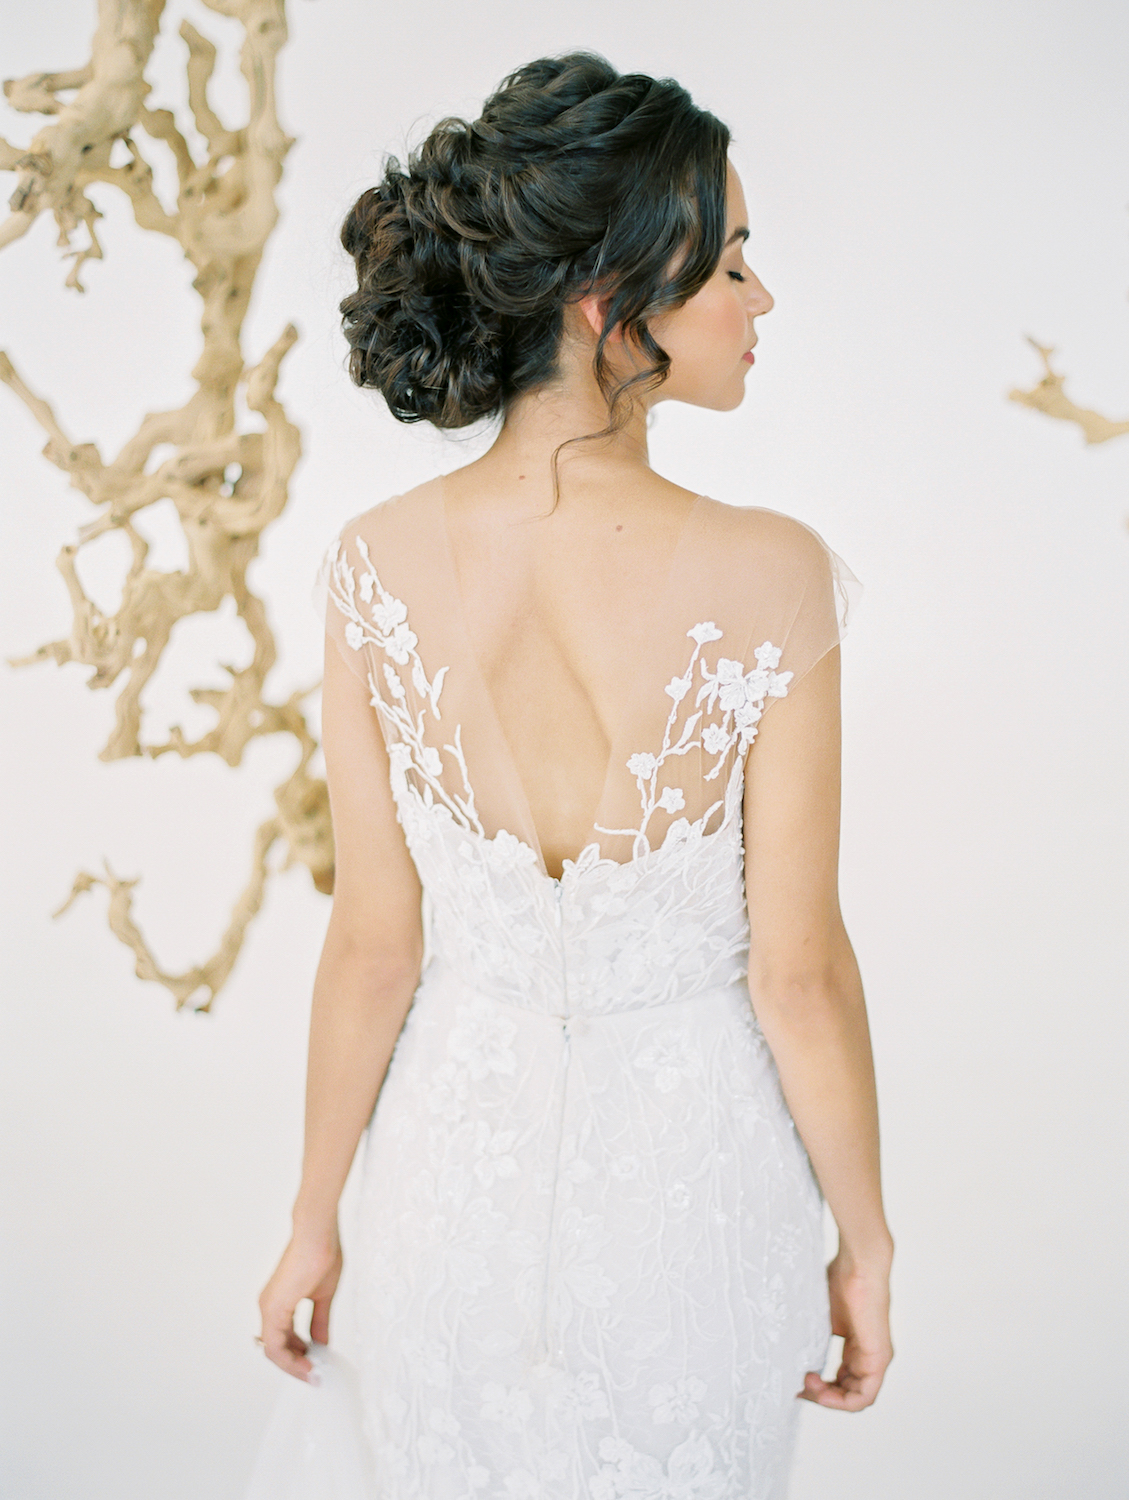 Elegant bridal updo | Studio 710 | Compass Floral | Wedding Florist in San Diego and Southern California | Dear Lovers Photography